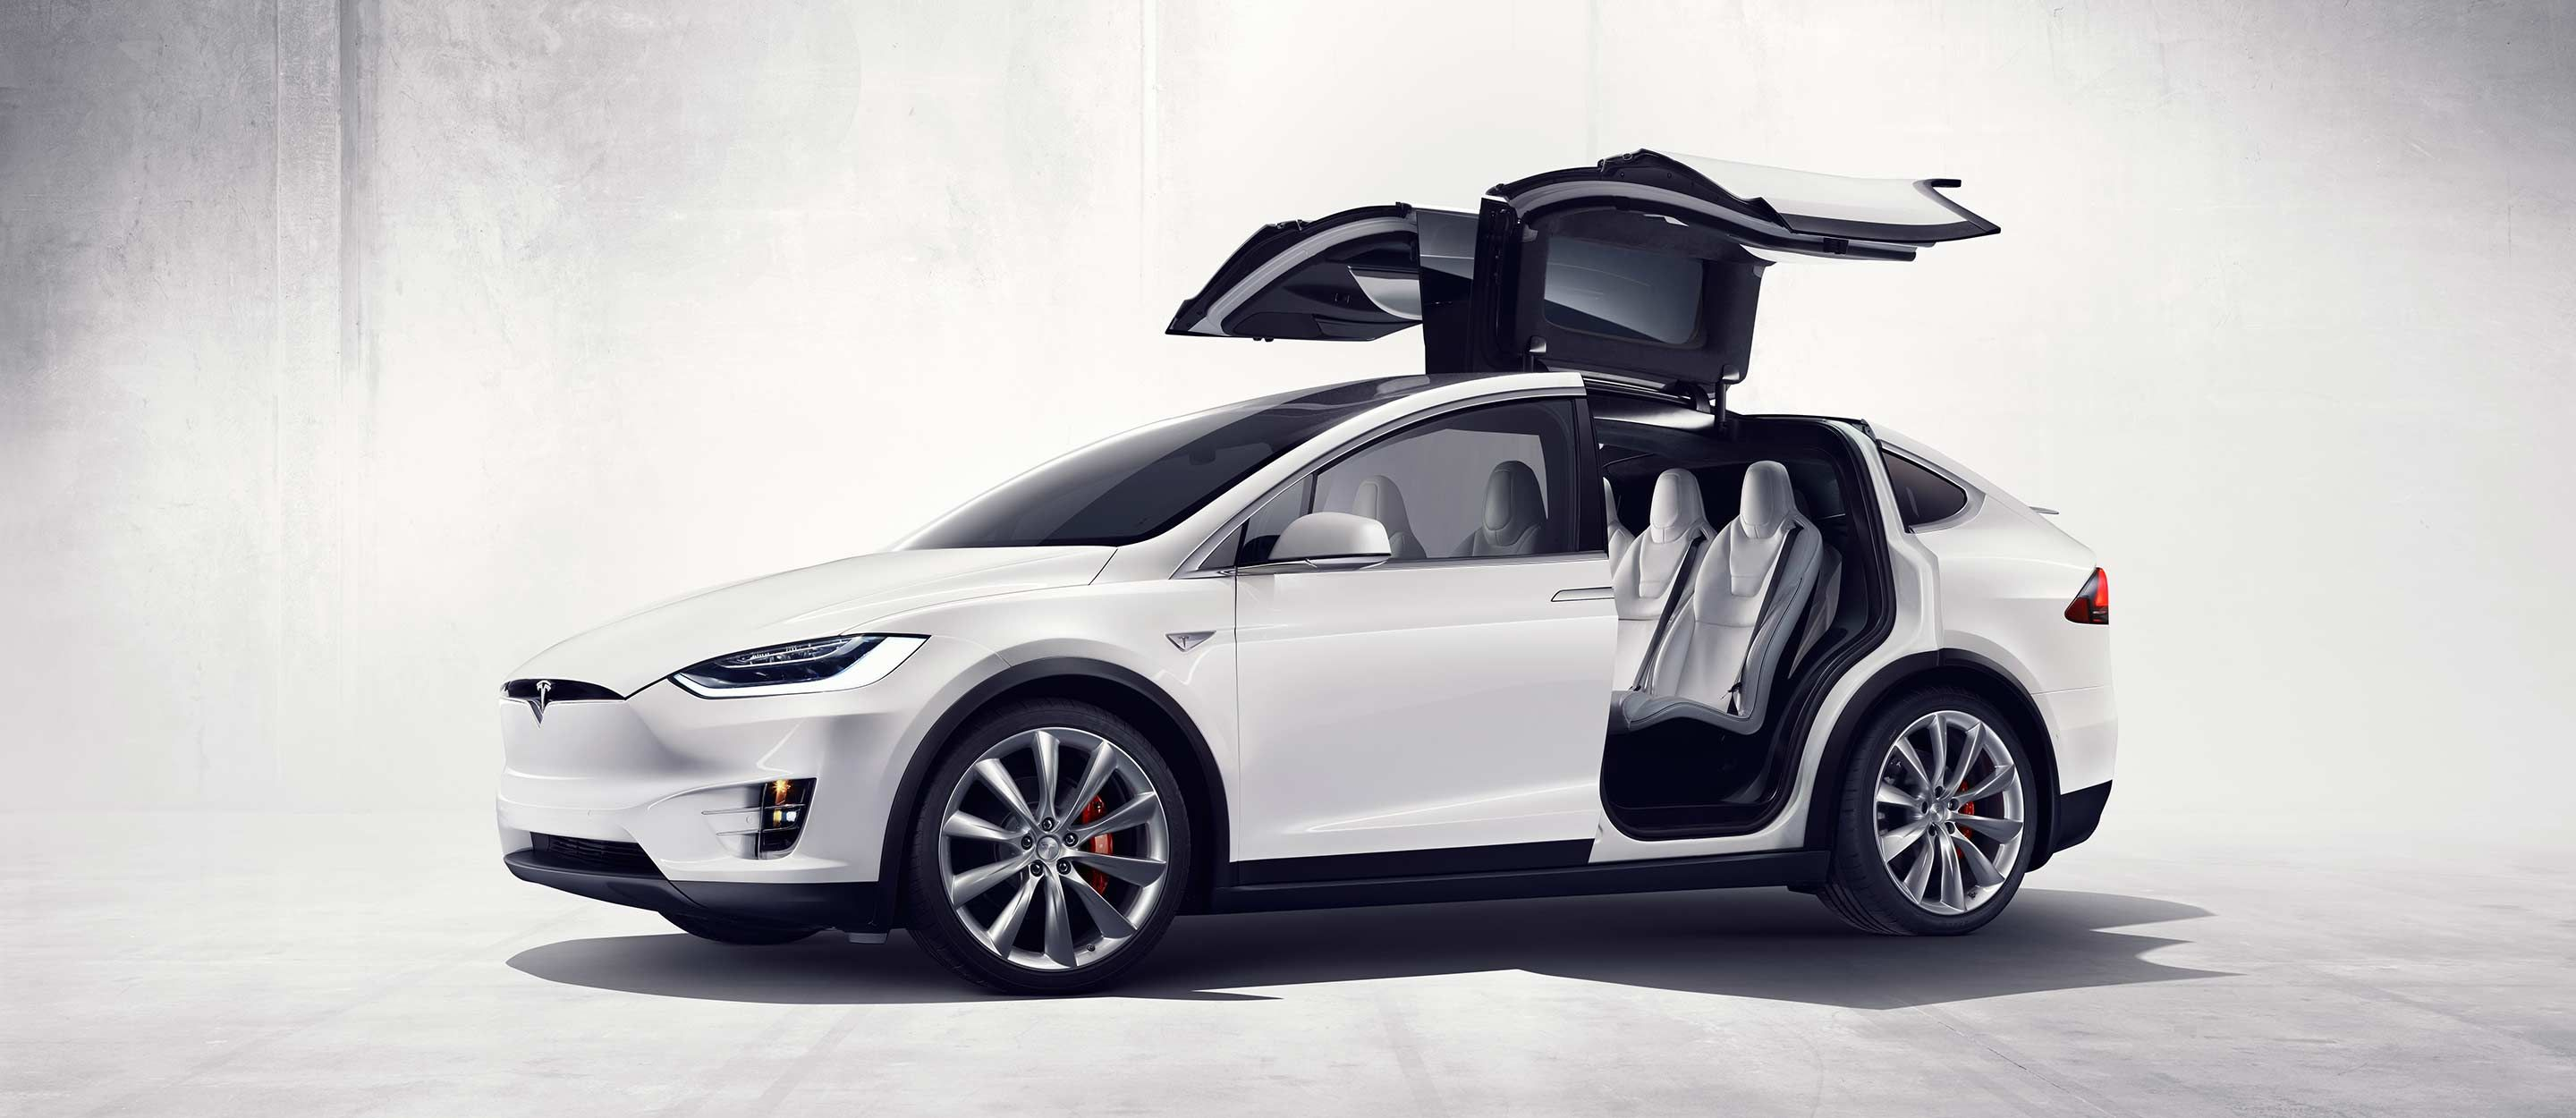 Model X Is The Safest Fastest And Most Capable Sport Utility Vehicle In History With All Wheel Drive And A 100 Kwh Batter Tesla Model X Tesla Car Tesla Model